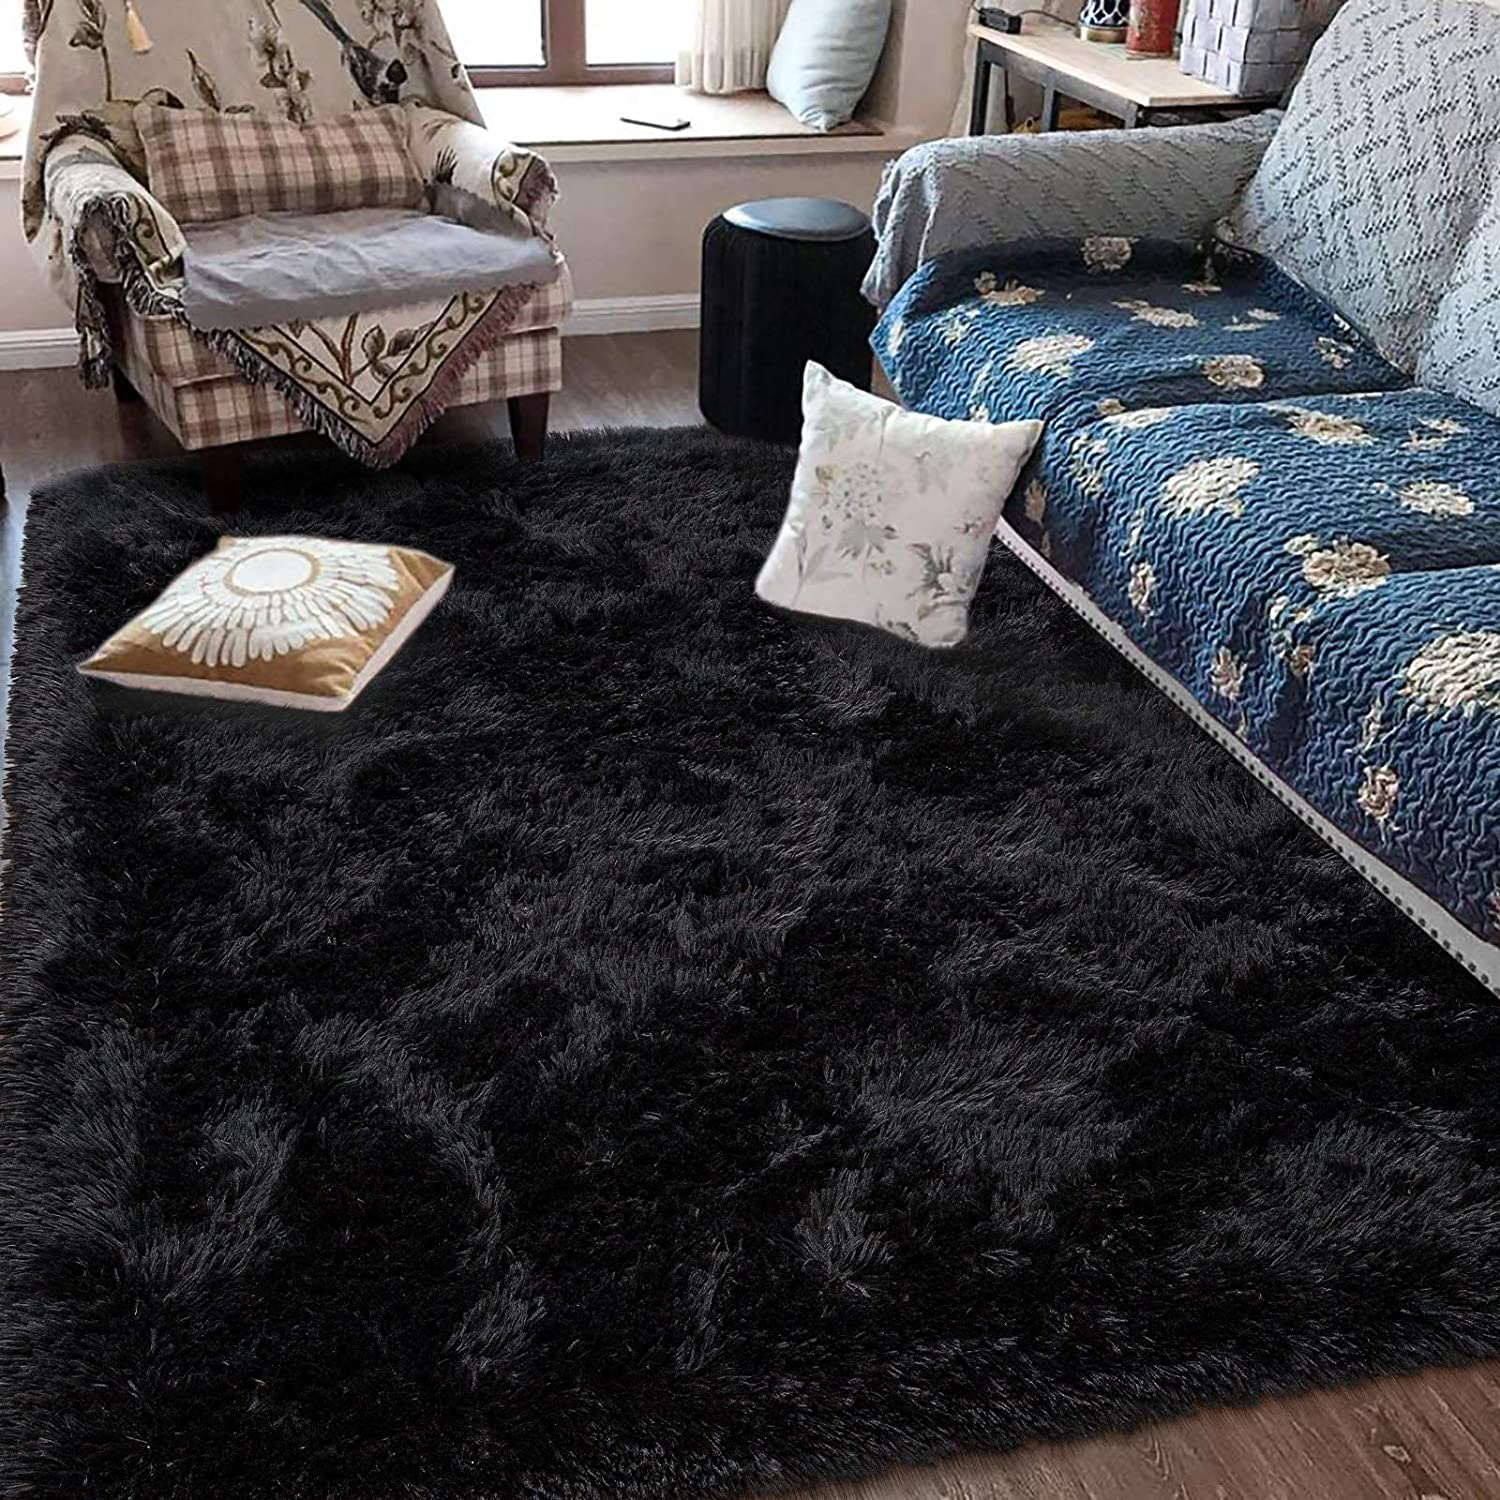 Fluffy Soft Kids Room Rug Baby Nursery Decor, Anti-Skid Large Fuzzy Shag Fur Area Rugs, Modern Indoor Home Living Room Floor Carpet for Children Boys Girls Bedroom Rugs, Black 5 x 8 Feet